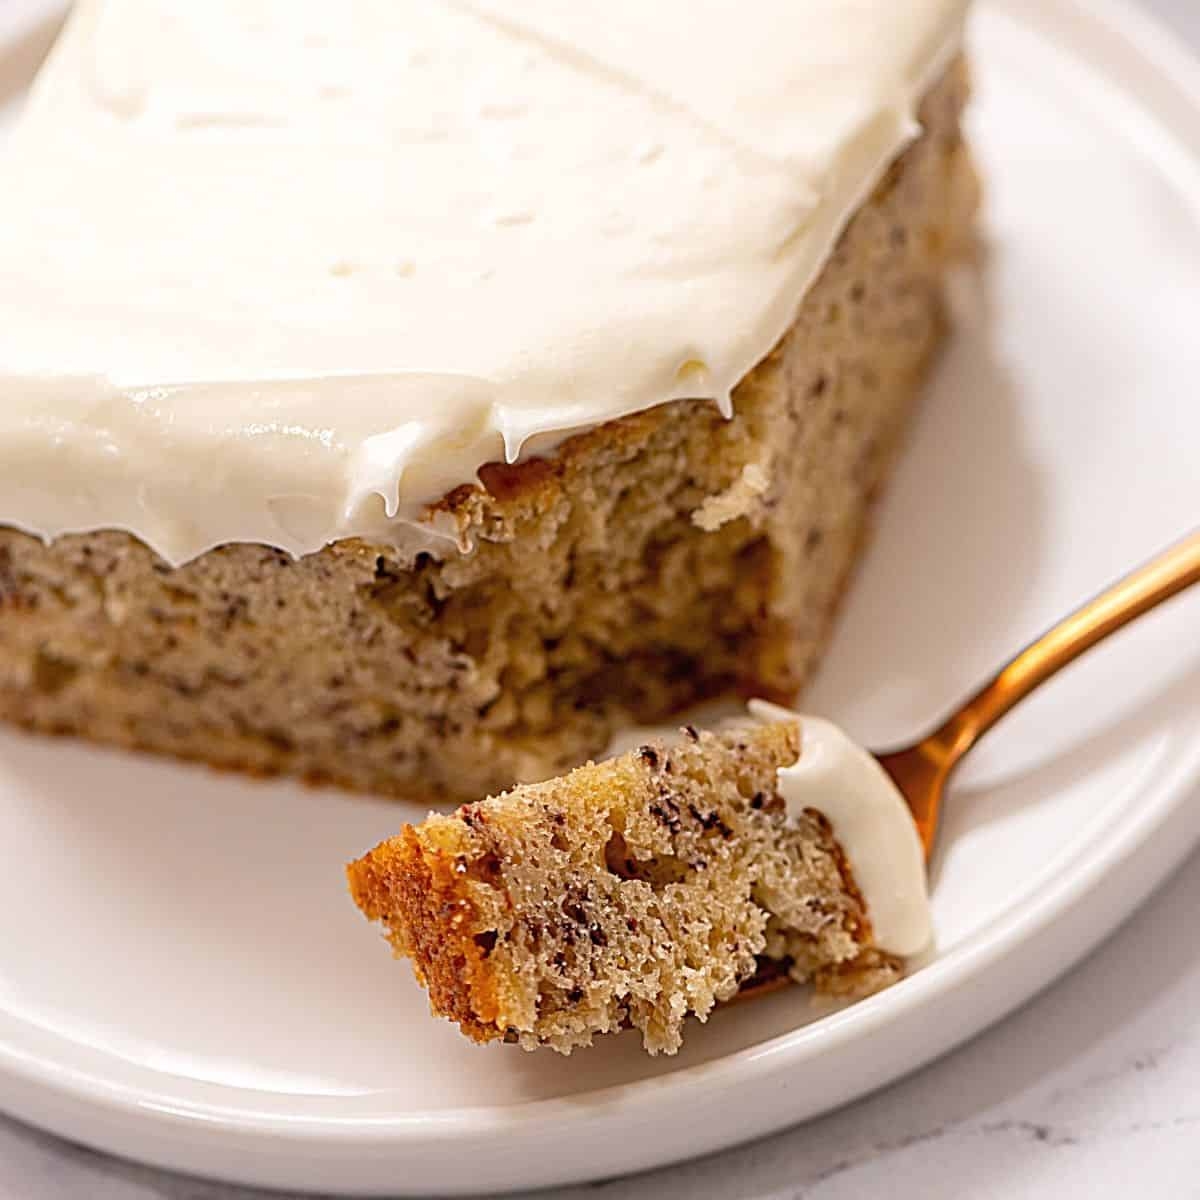 Fork with slice of banana cake on it.